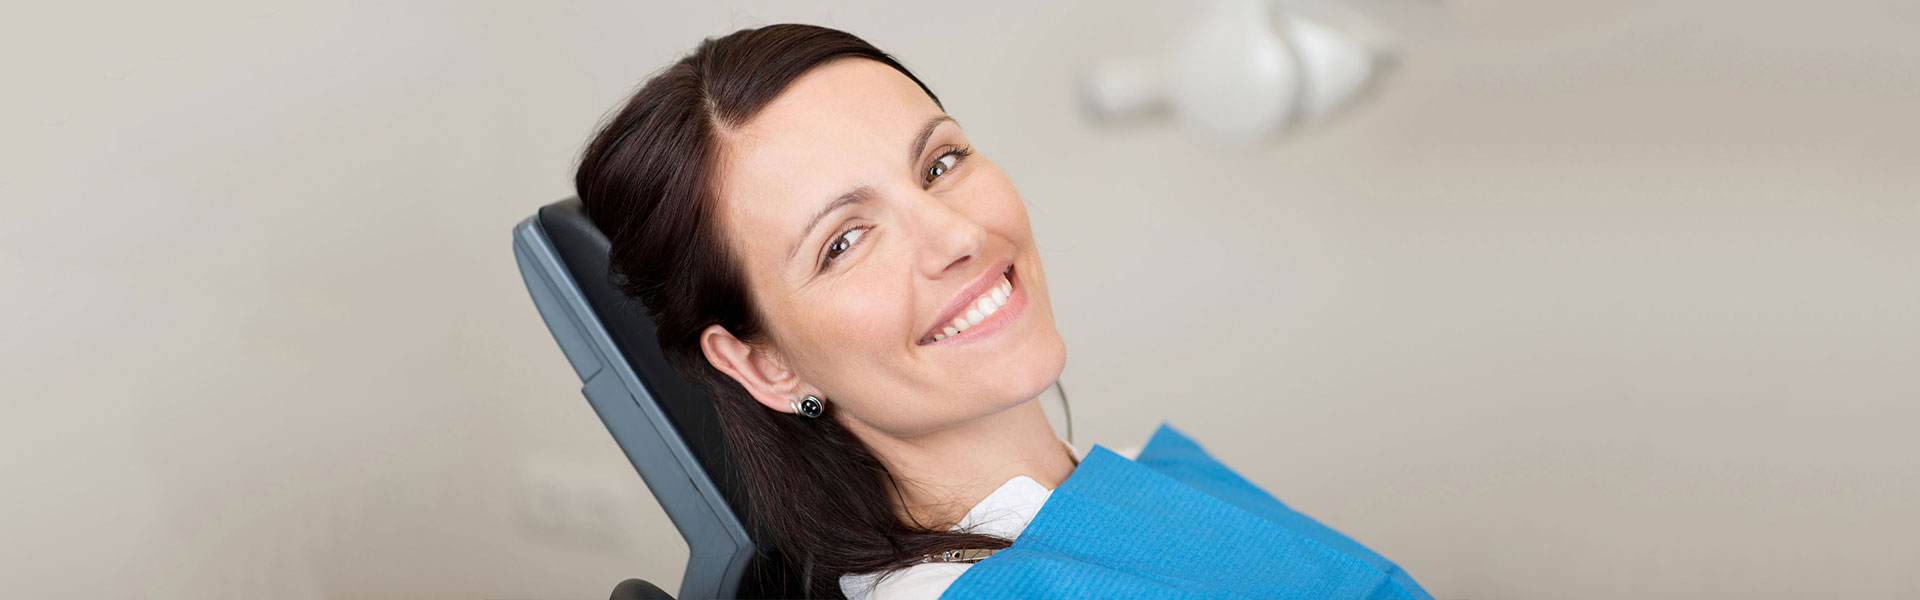 Need a Root Canal? Here's a Step-by-Step Guide on What to Expect.